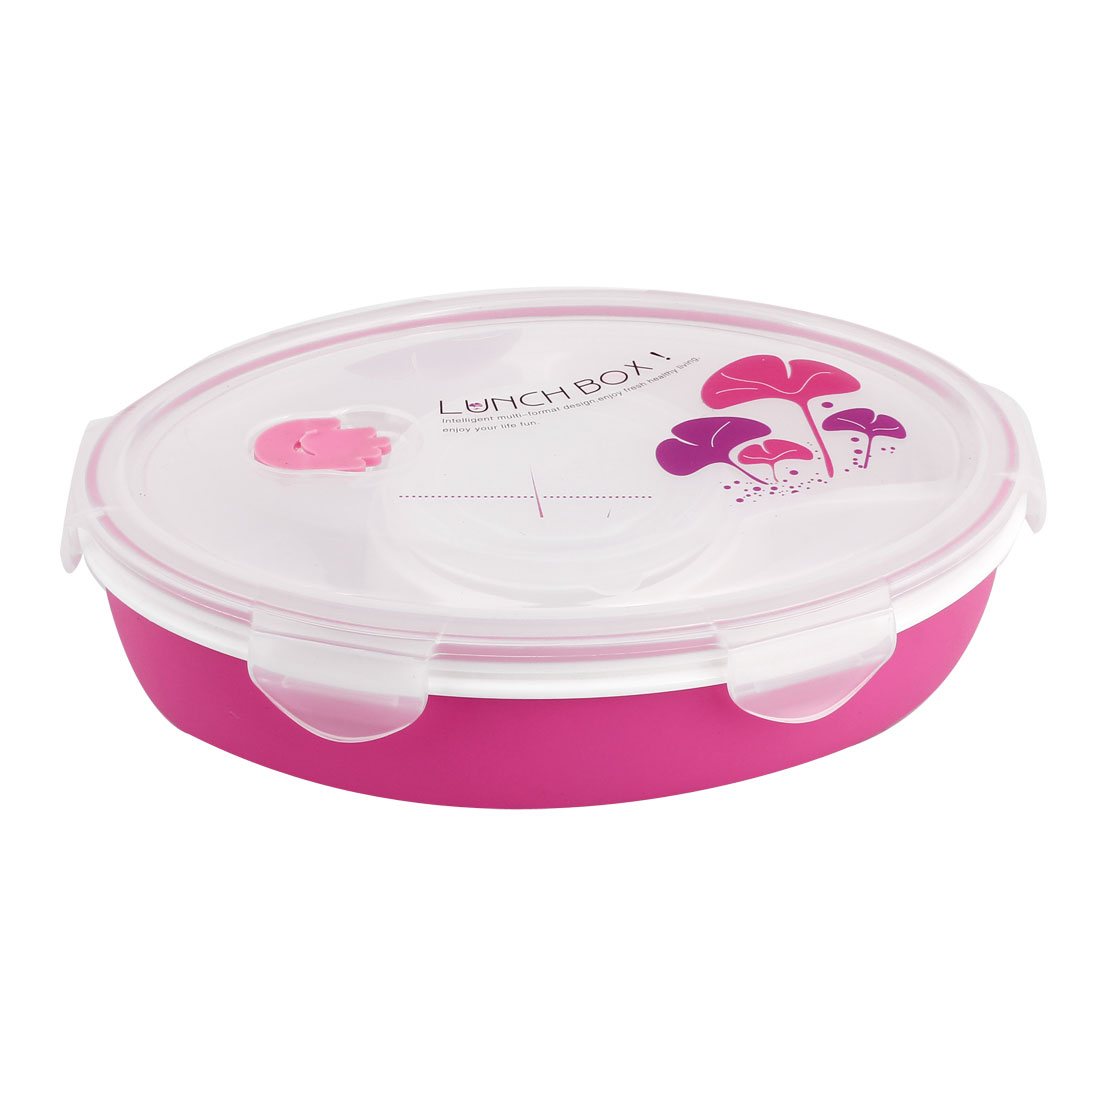 Fuchsia Clear Plastic Egg Shape Thermal Insulated Multi Compartment Design Lunch Box Food Storage Container w Soup Case